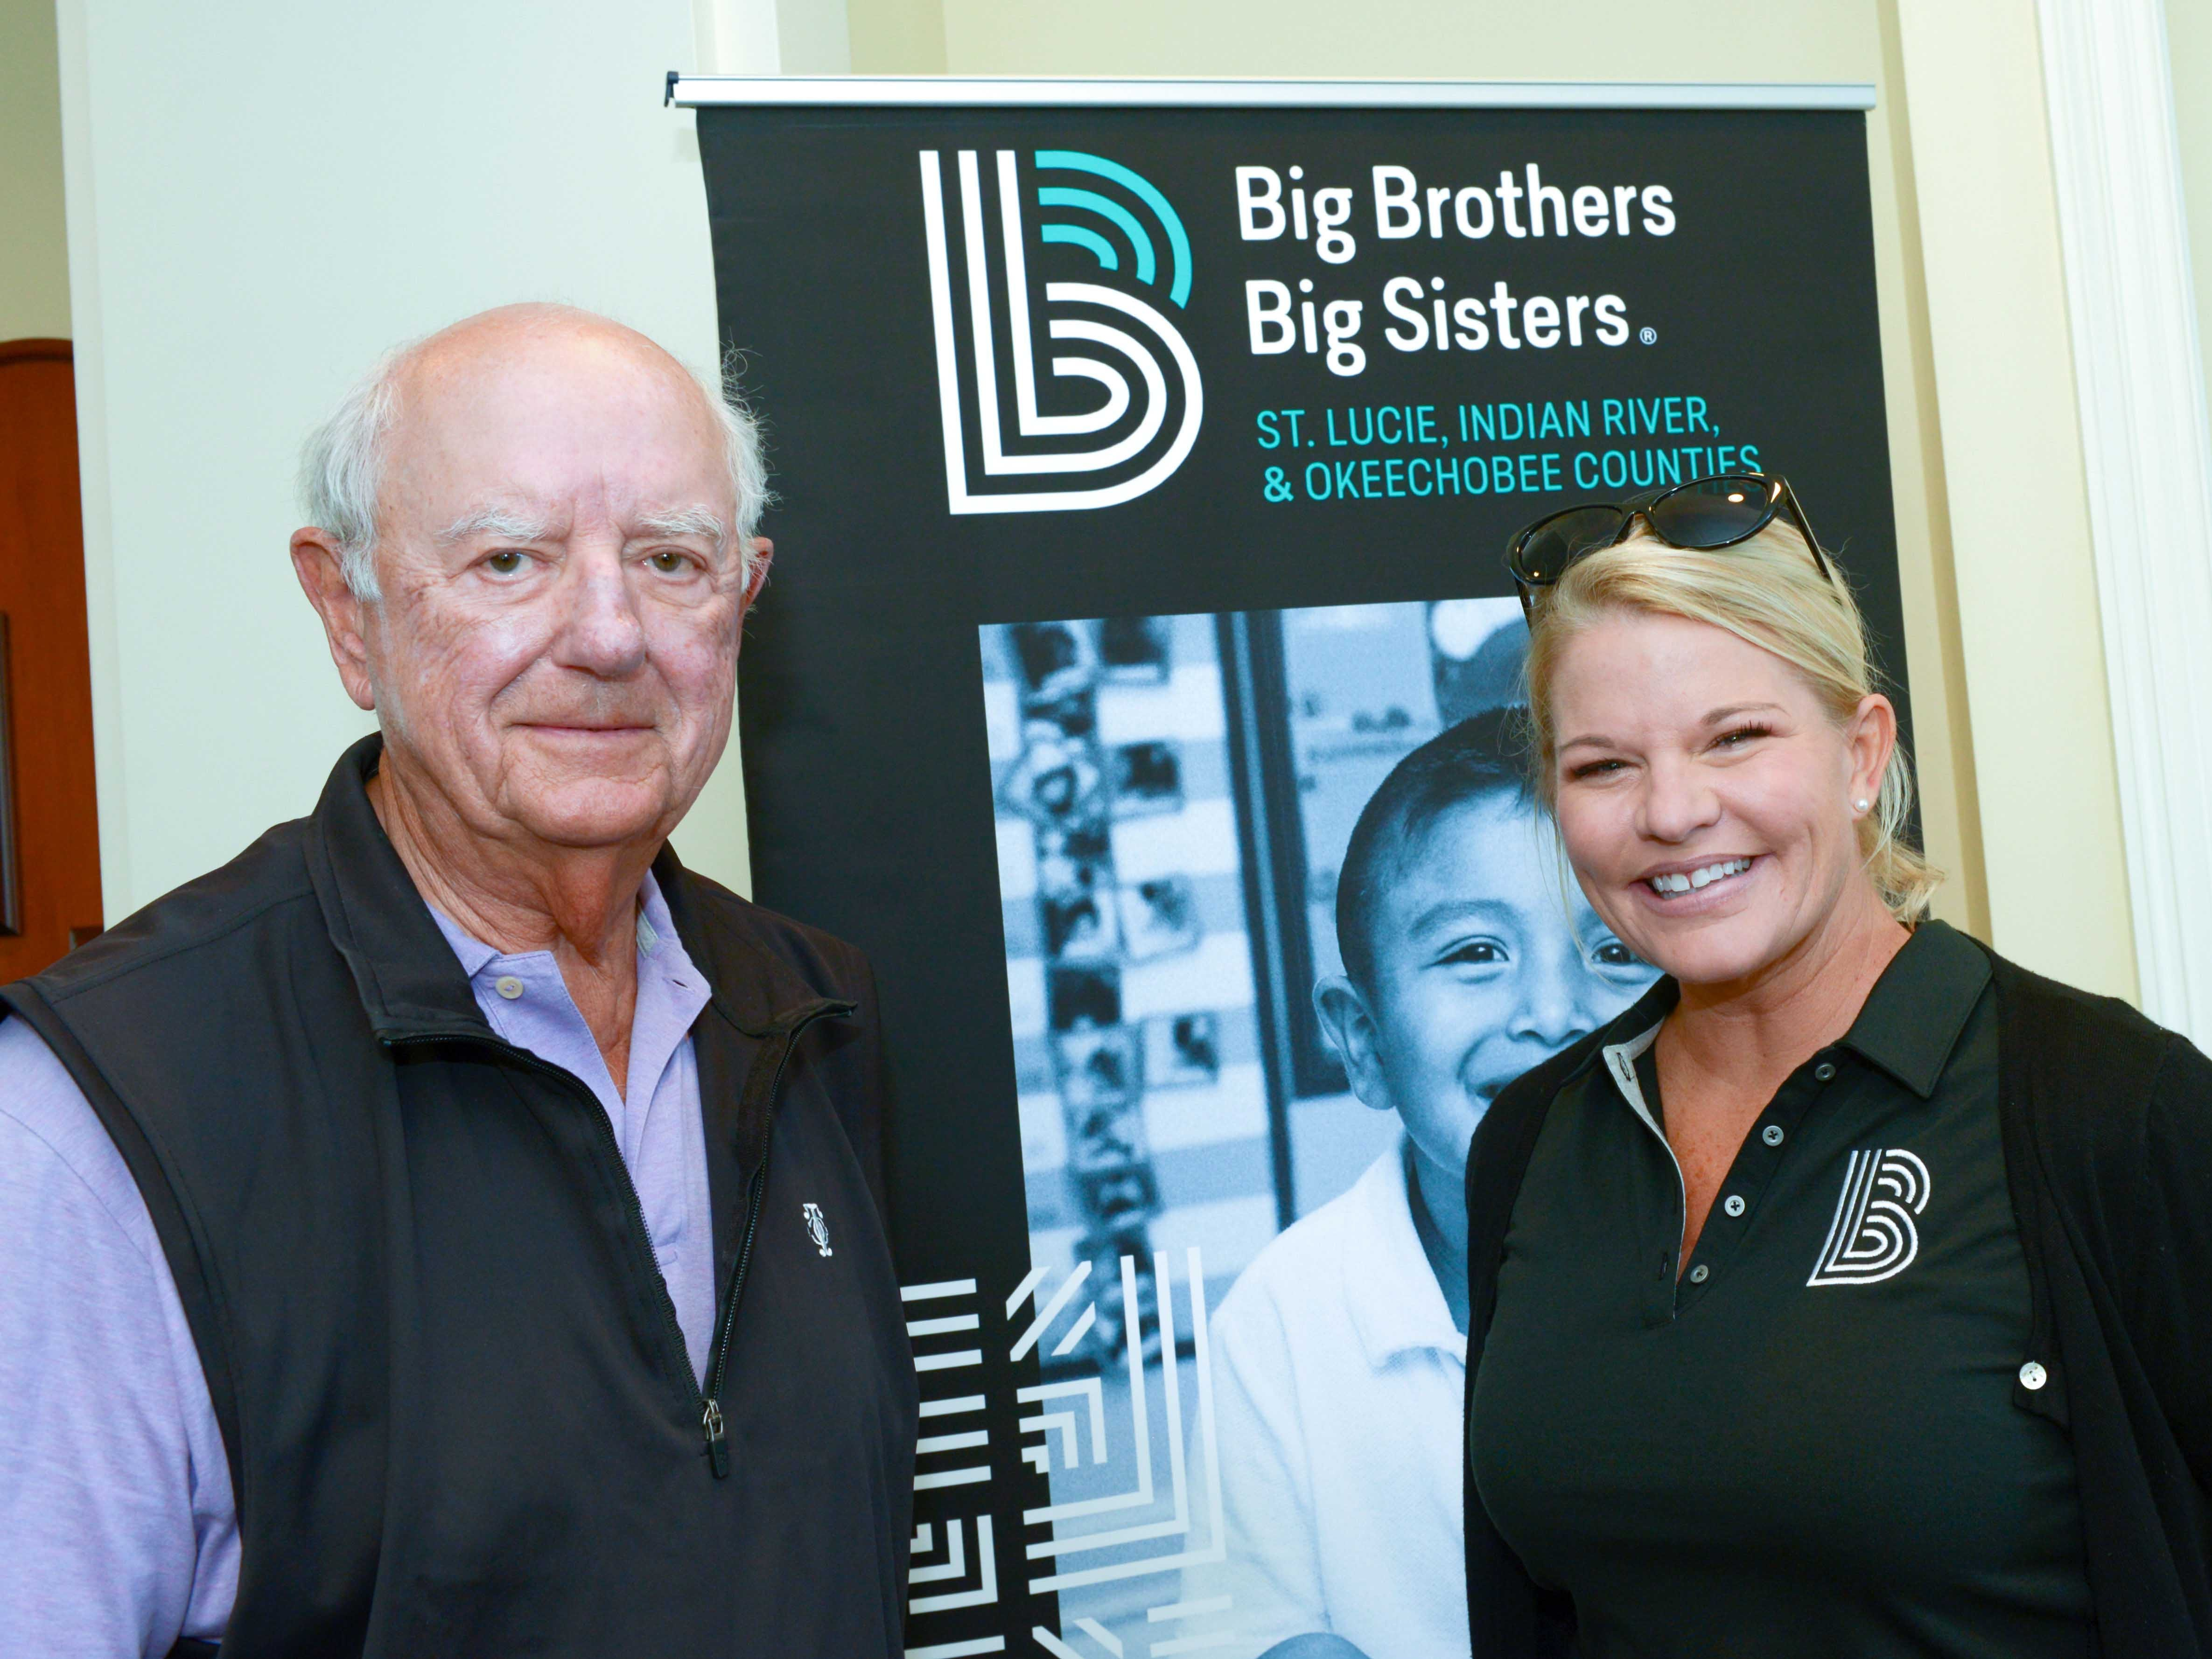 Golf Cart Sponsor Dale Sorensen of Dale Sorensen Real Estate with Big Brothers Big Sisters CEO Stacey Watson-Mesley at Hawk's Nest Golf Club for the golf tournament on Feb. 4.